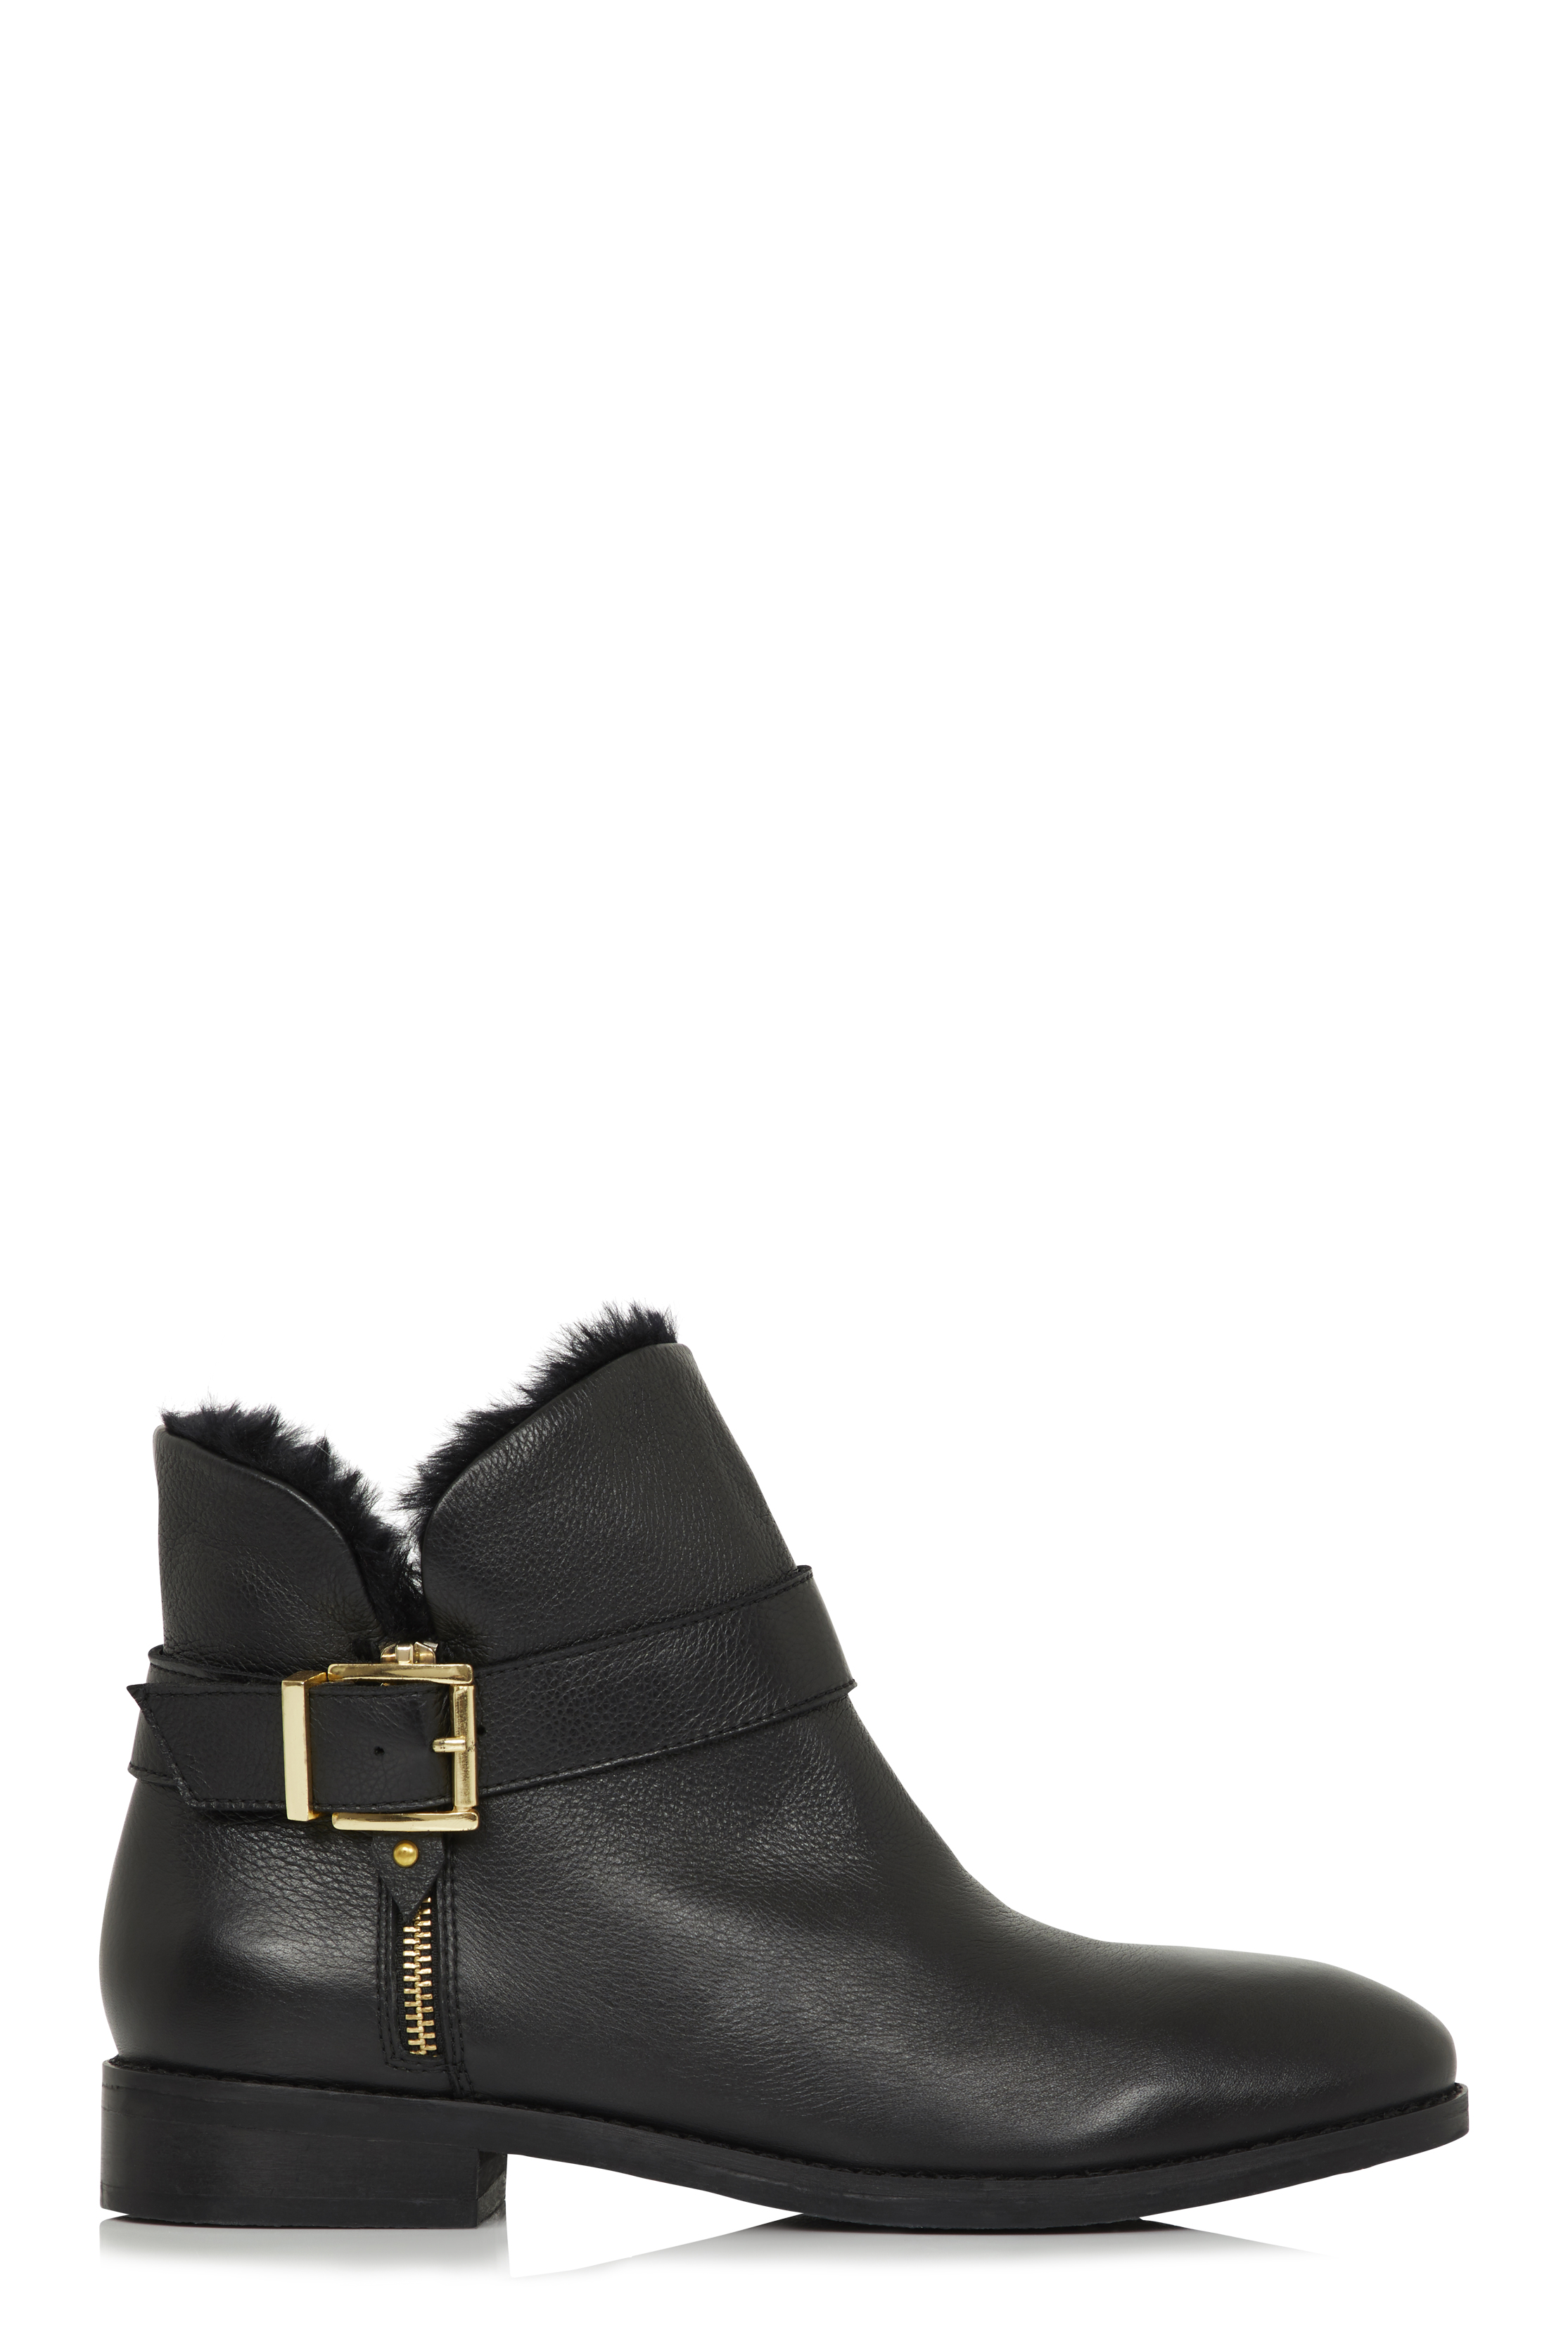 LTS Abigail Leather Ankle Boot